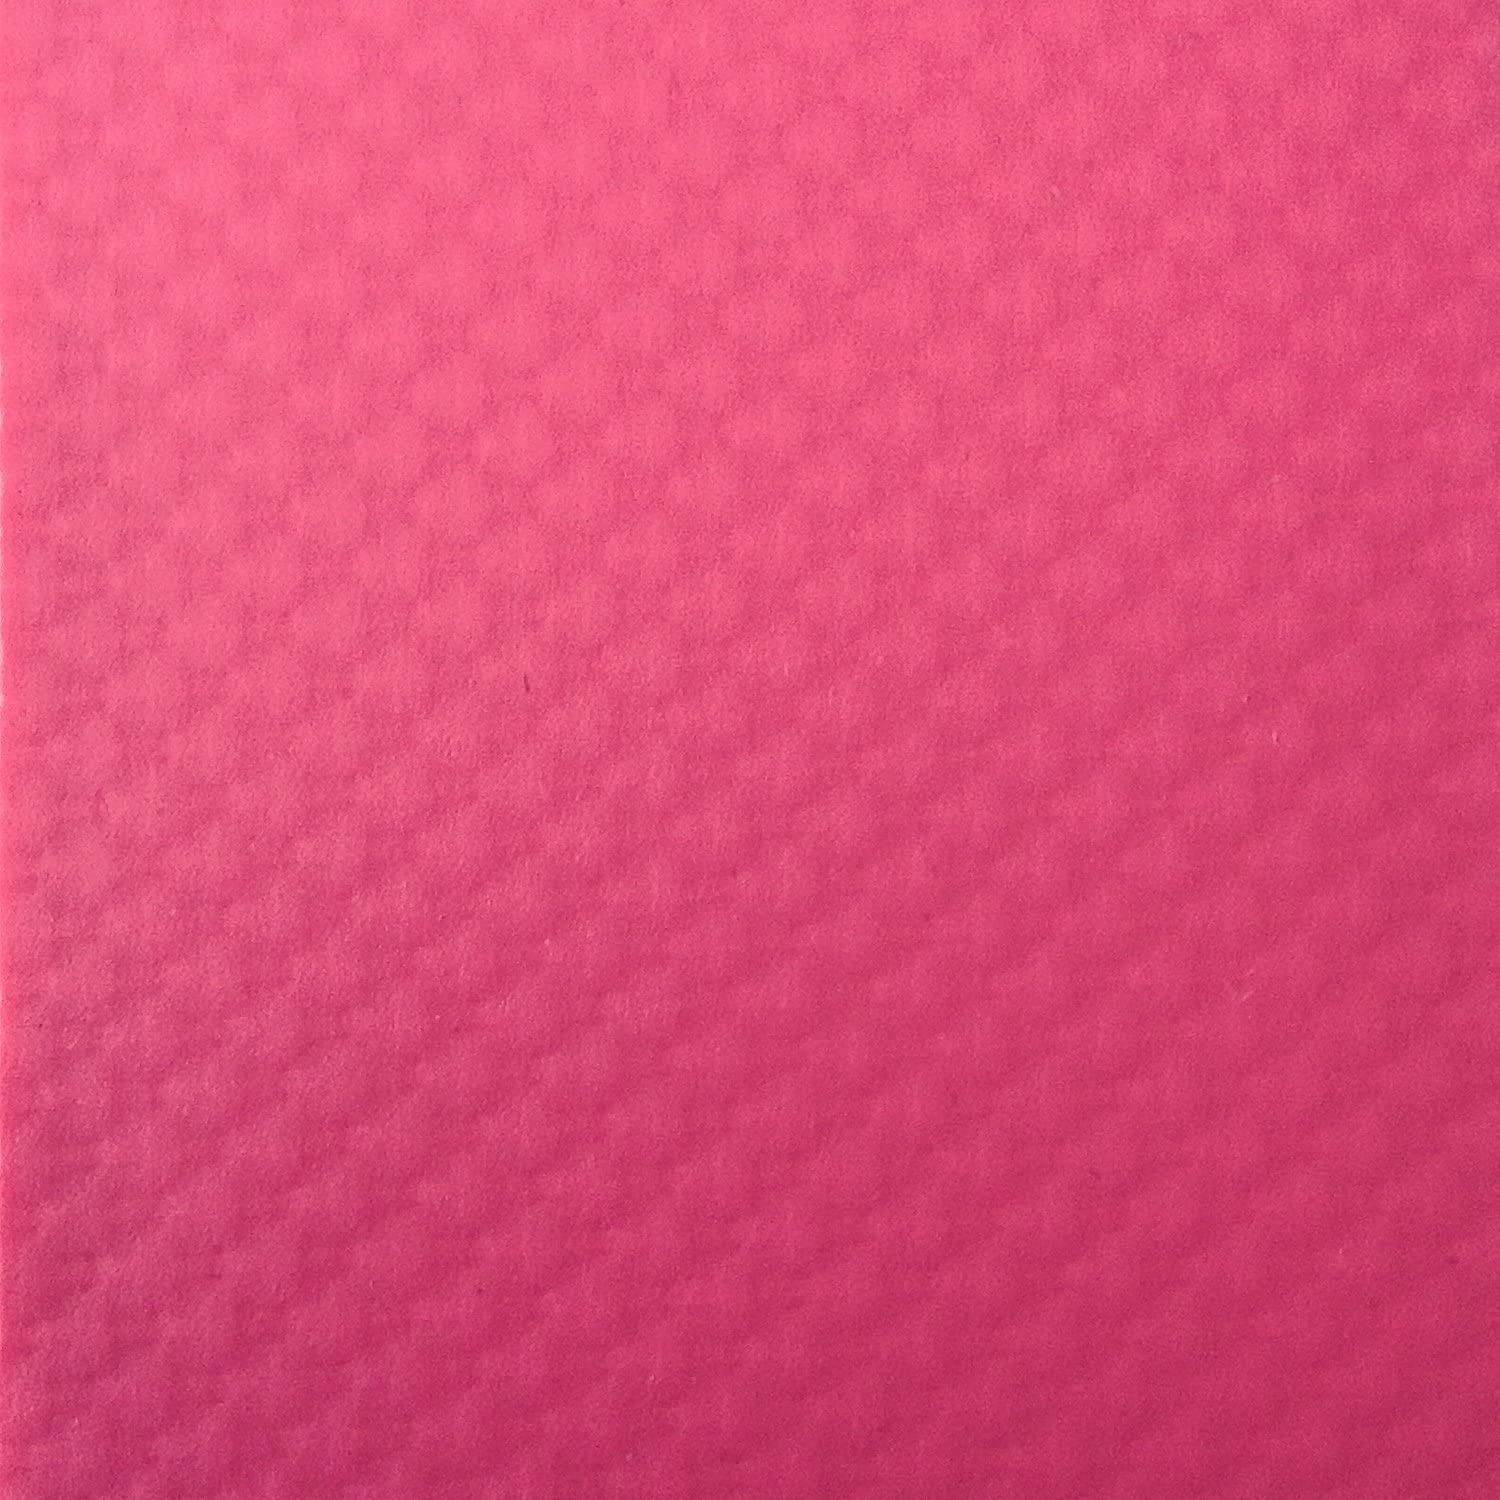 Triplon Vinyl Pink 72 Inch Regular discount Wholesale Fashionable 50 F.E. Yards by Roll the